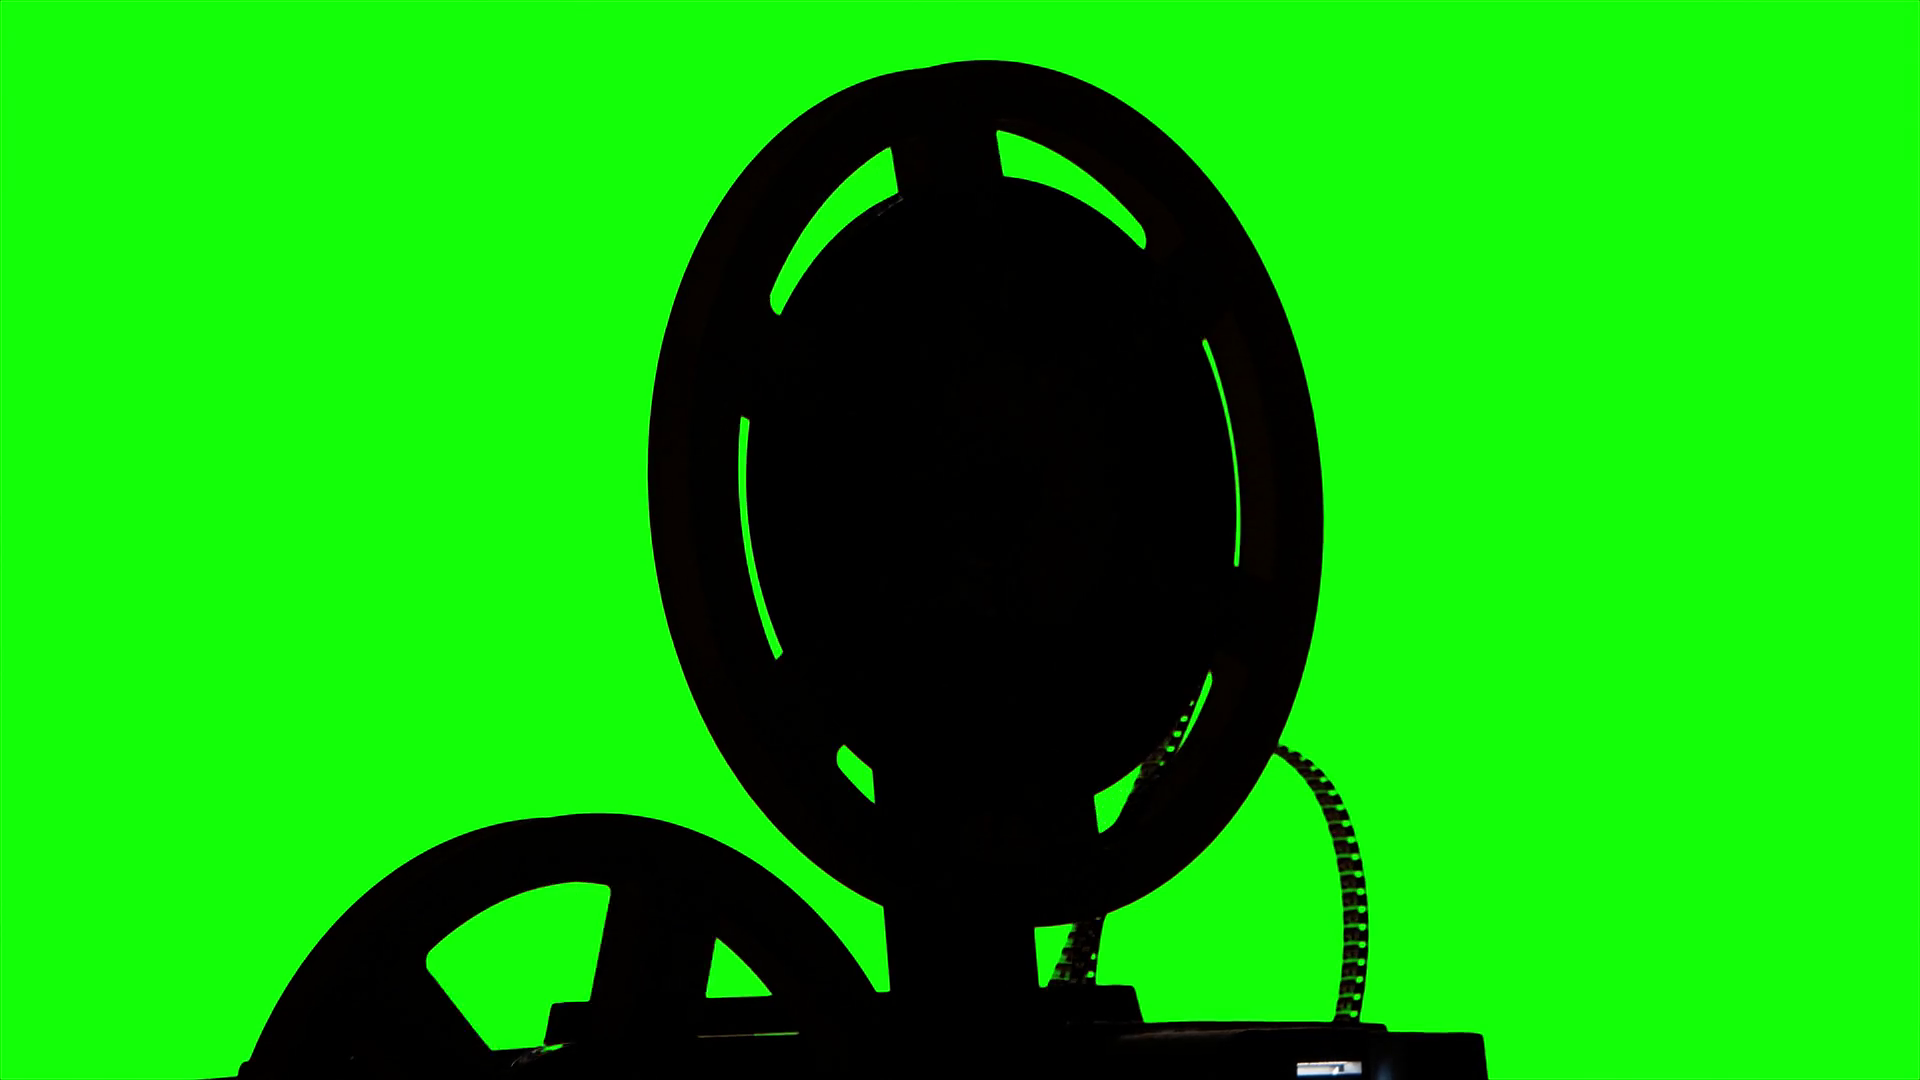 1920x1080 The Film Turns The Projector. Studio Green Screen Silhouette Stock